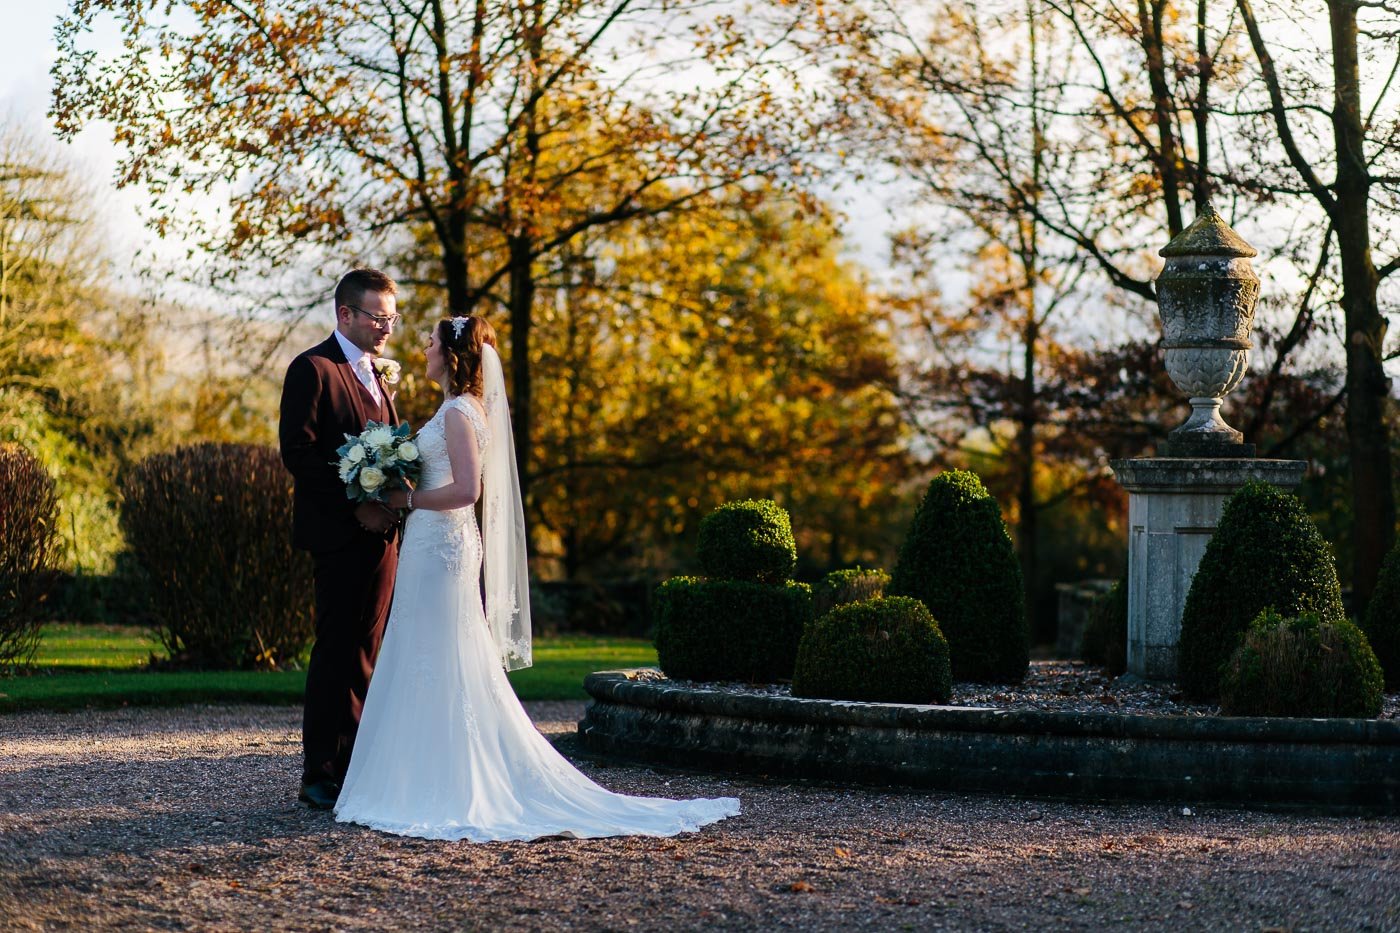 beautiful golden autumn colours in eaves hall gardens with bride and groom